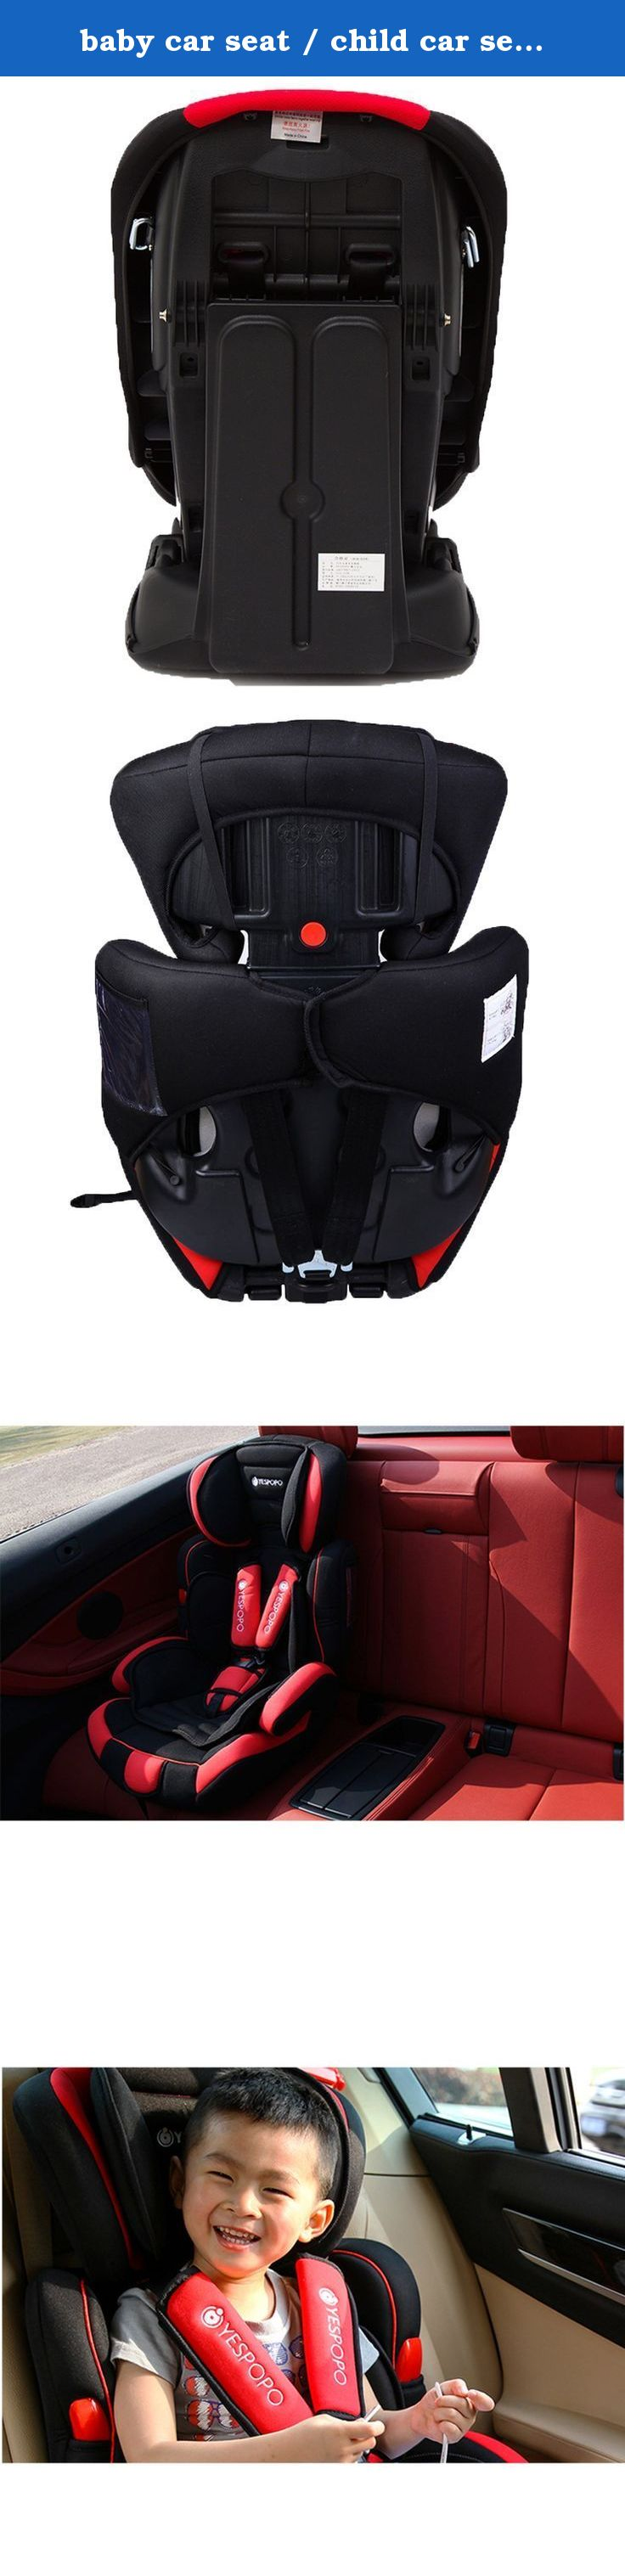 baby car seat / child car seat with E-mark certification for group 1 ...